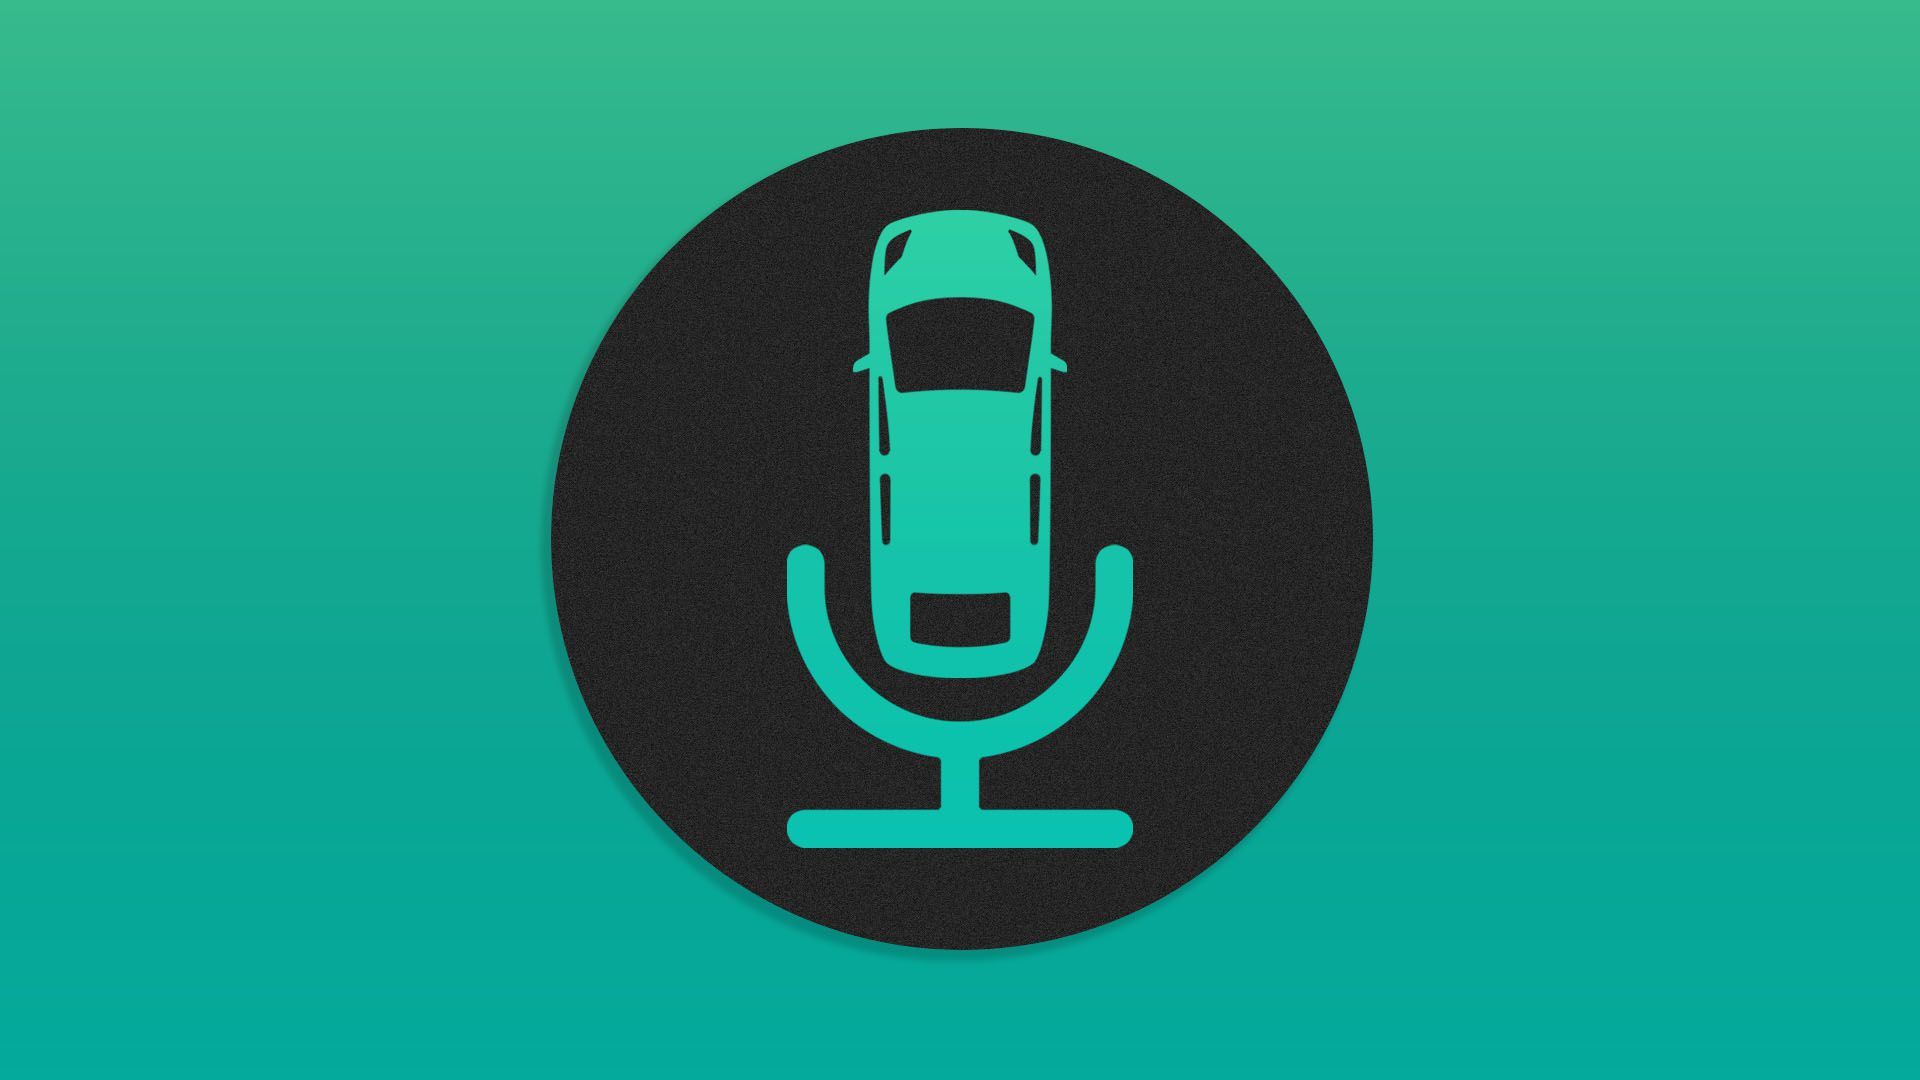 Illustration of microphone logo with a car in it